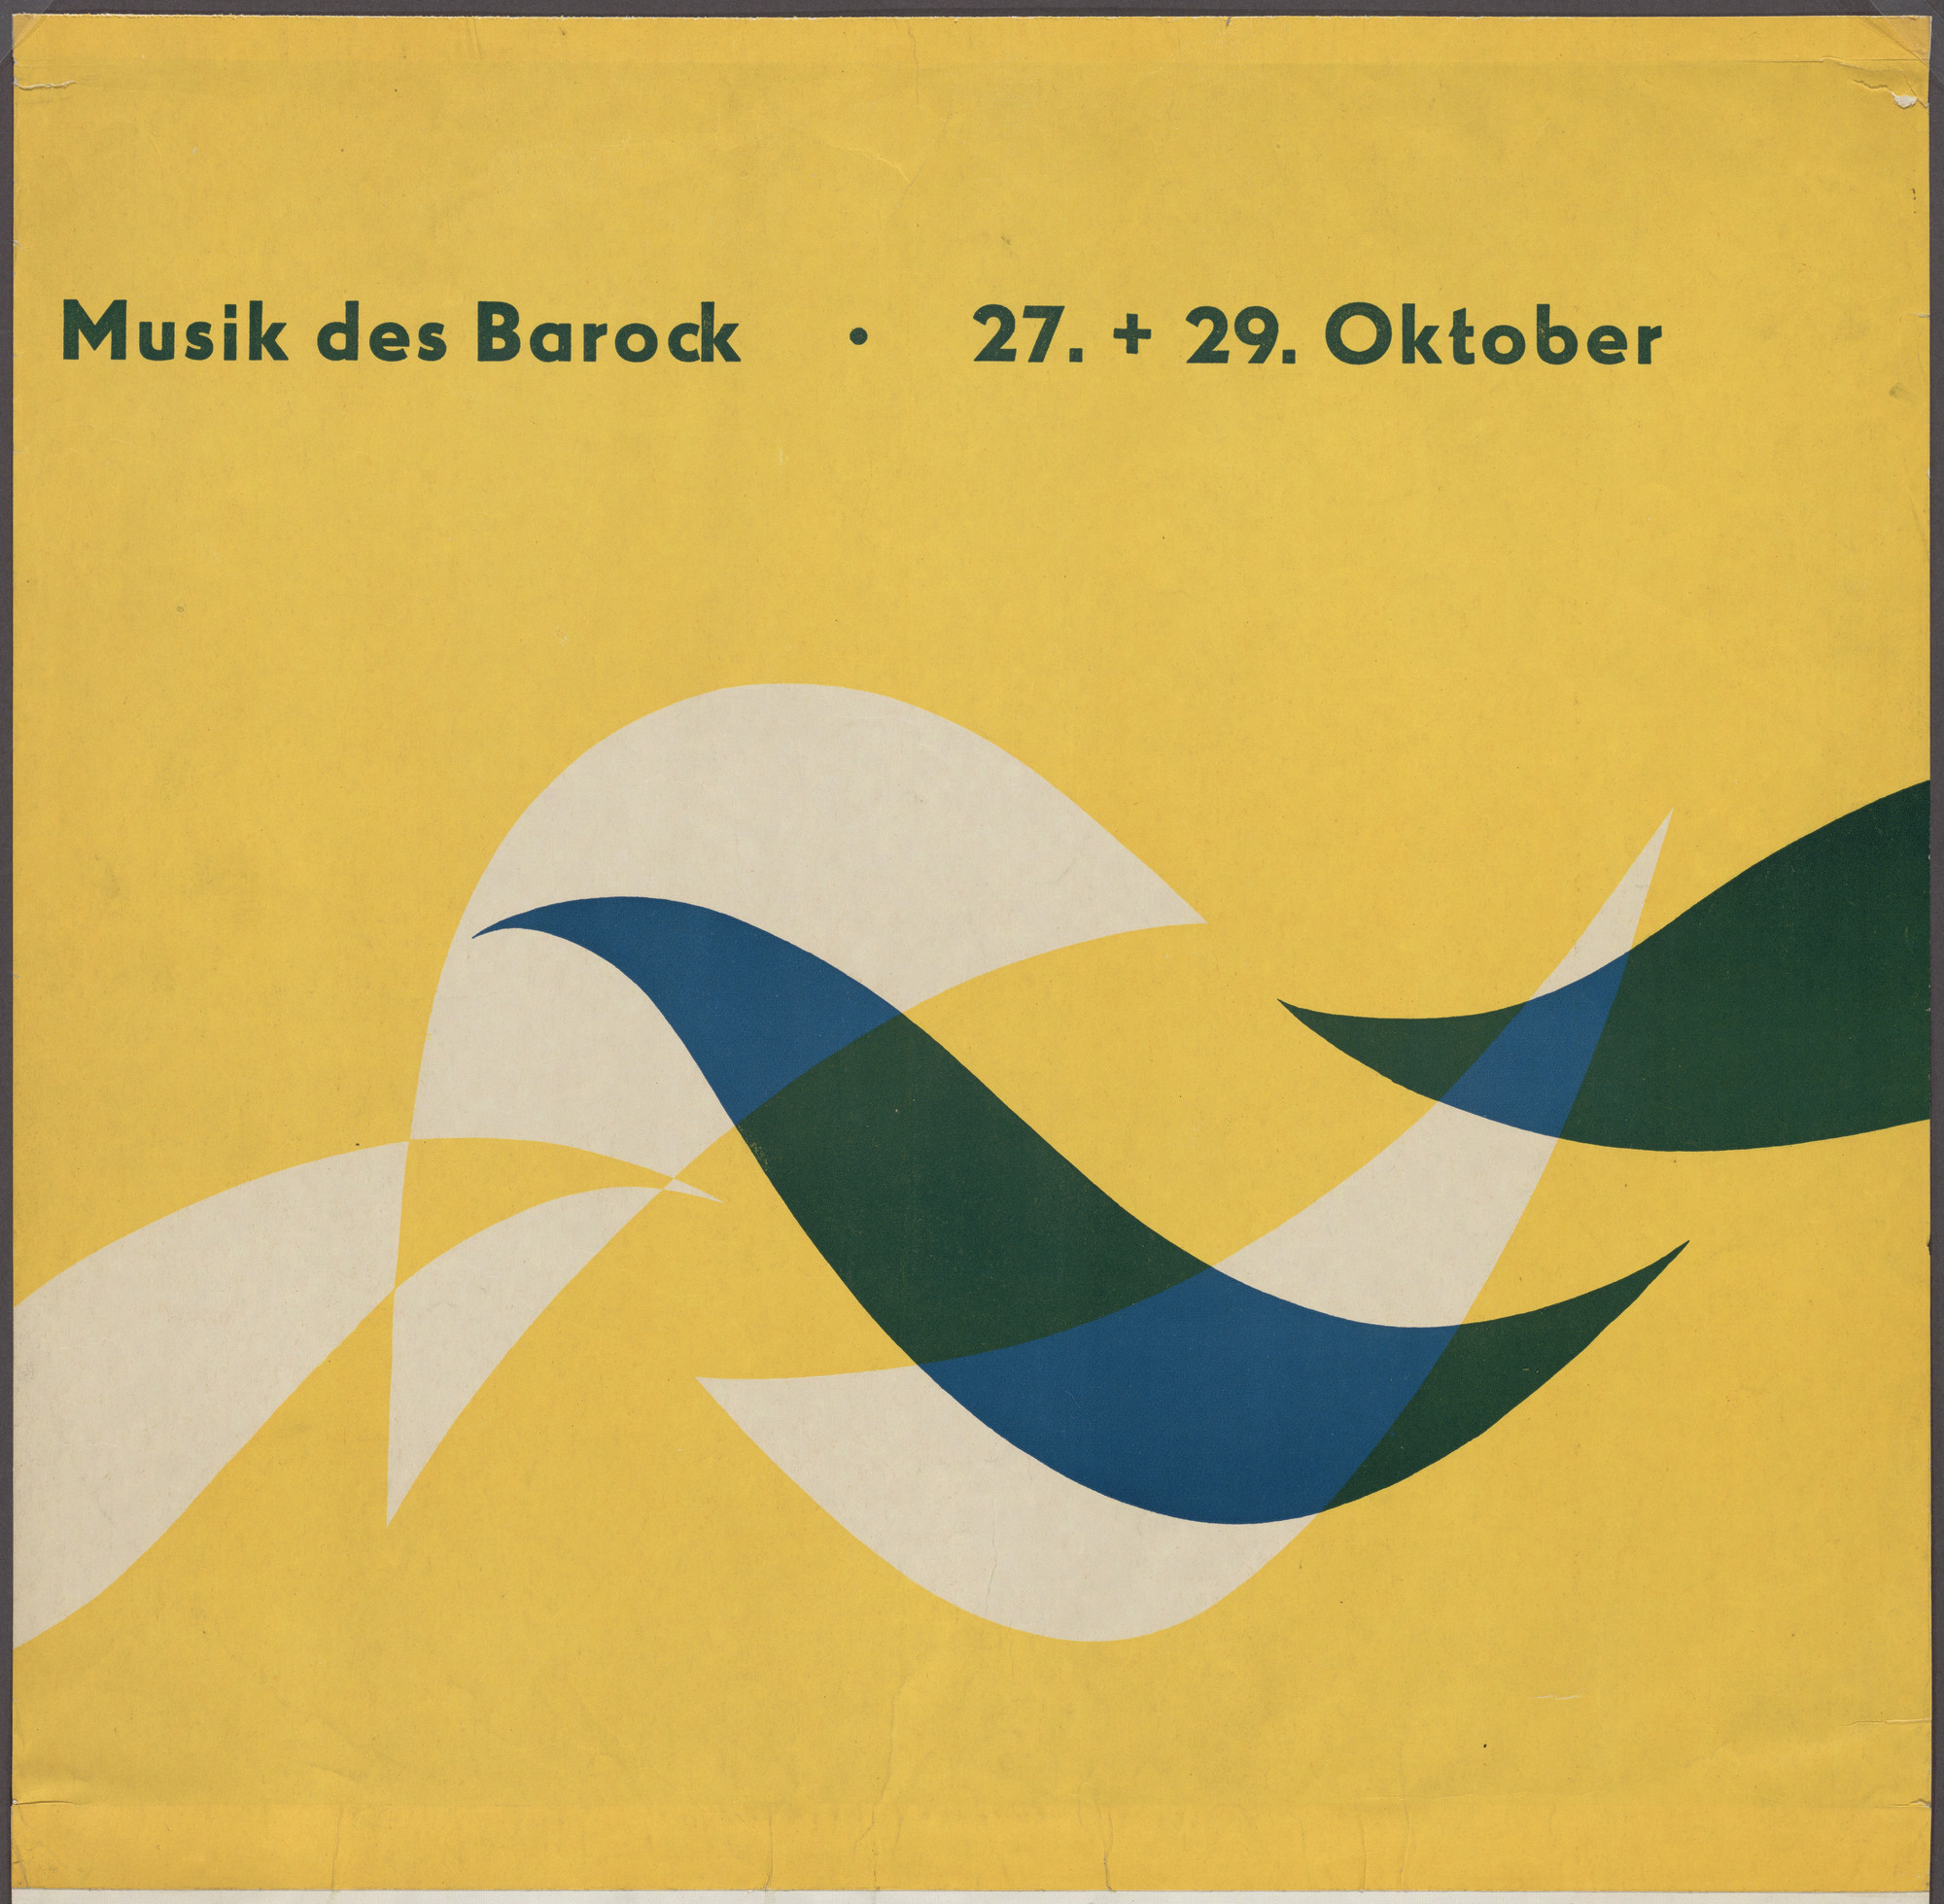 Otl Aicher (also known as Otto Aicher). Musik des Barock. 1949-51